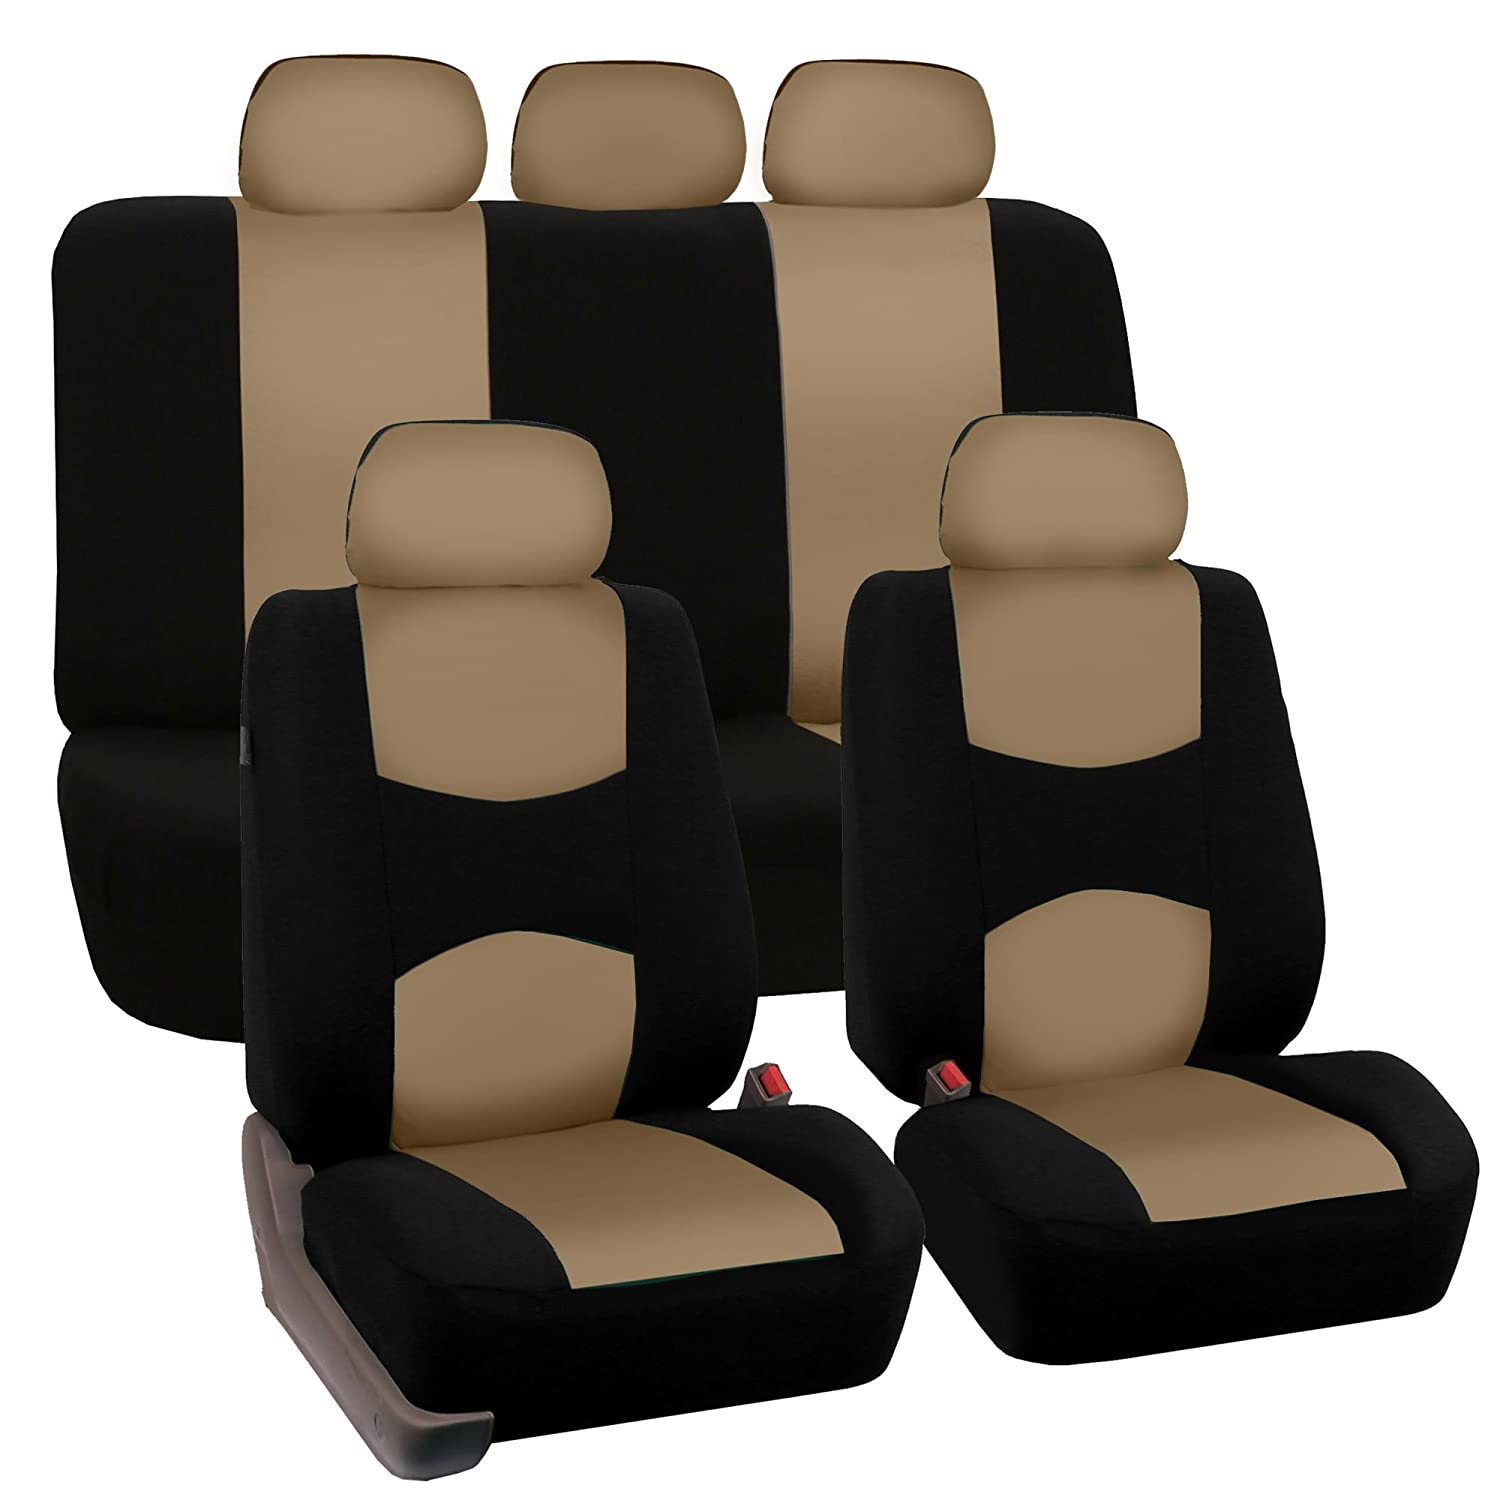 FH GROUP FH-FB050115 Flat Cloth Car Seat Covers Burgundy/Black Color